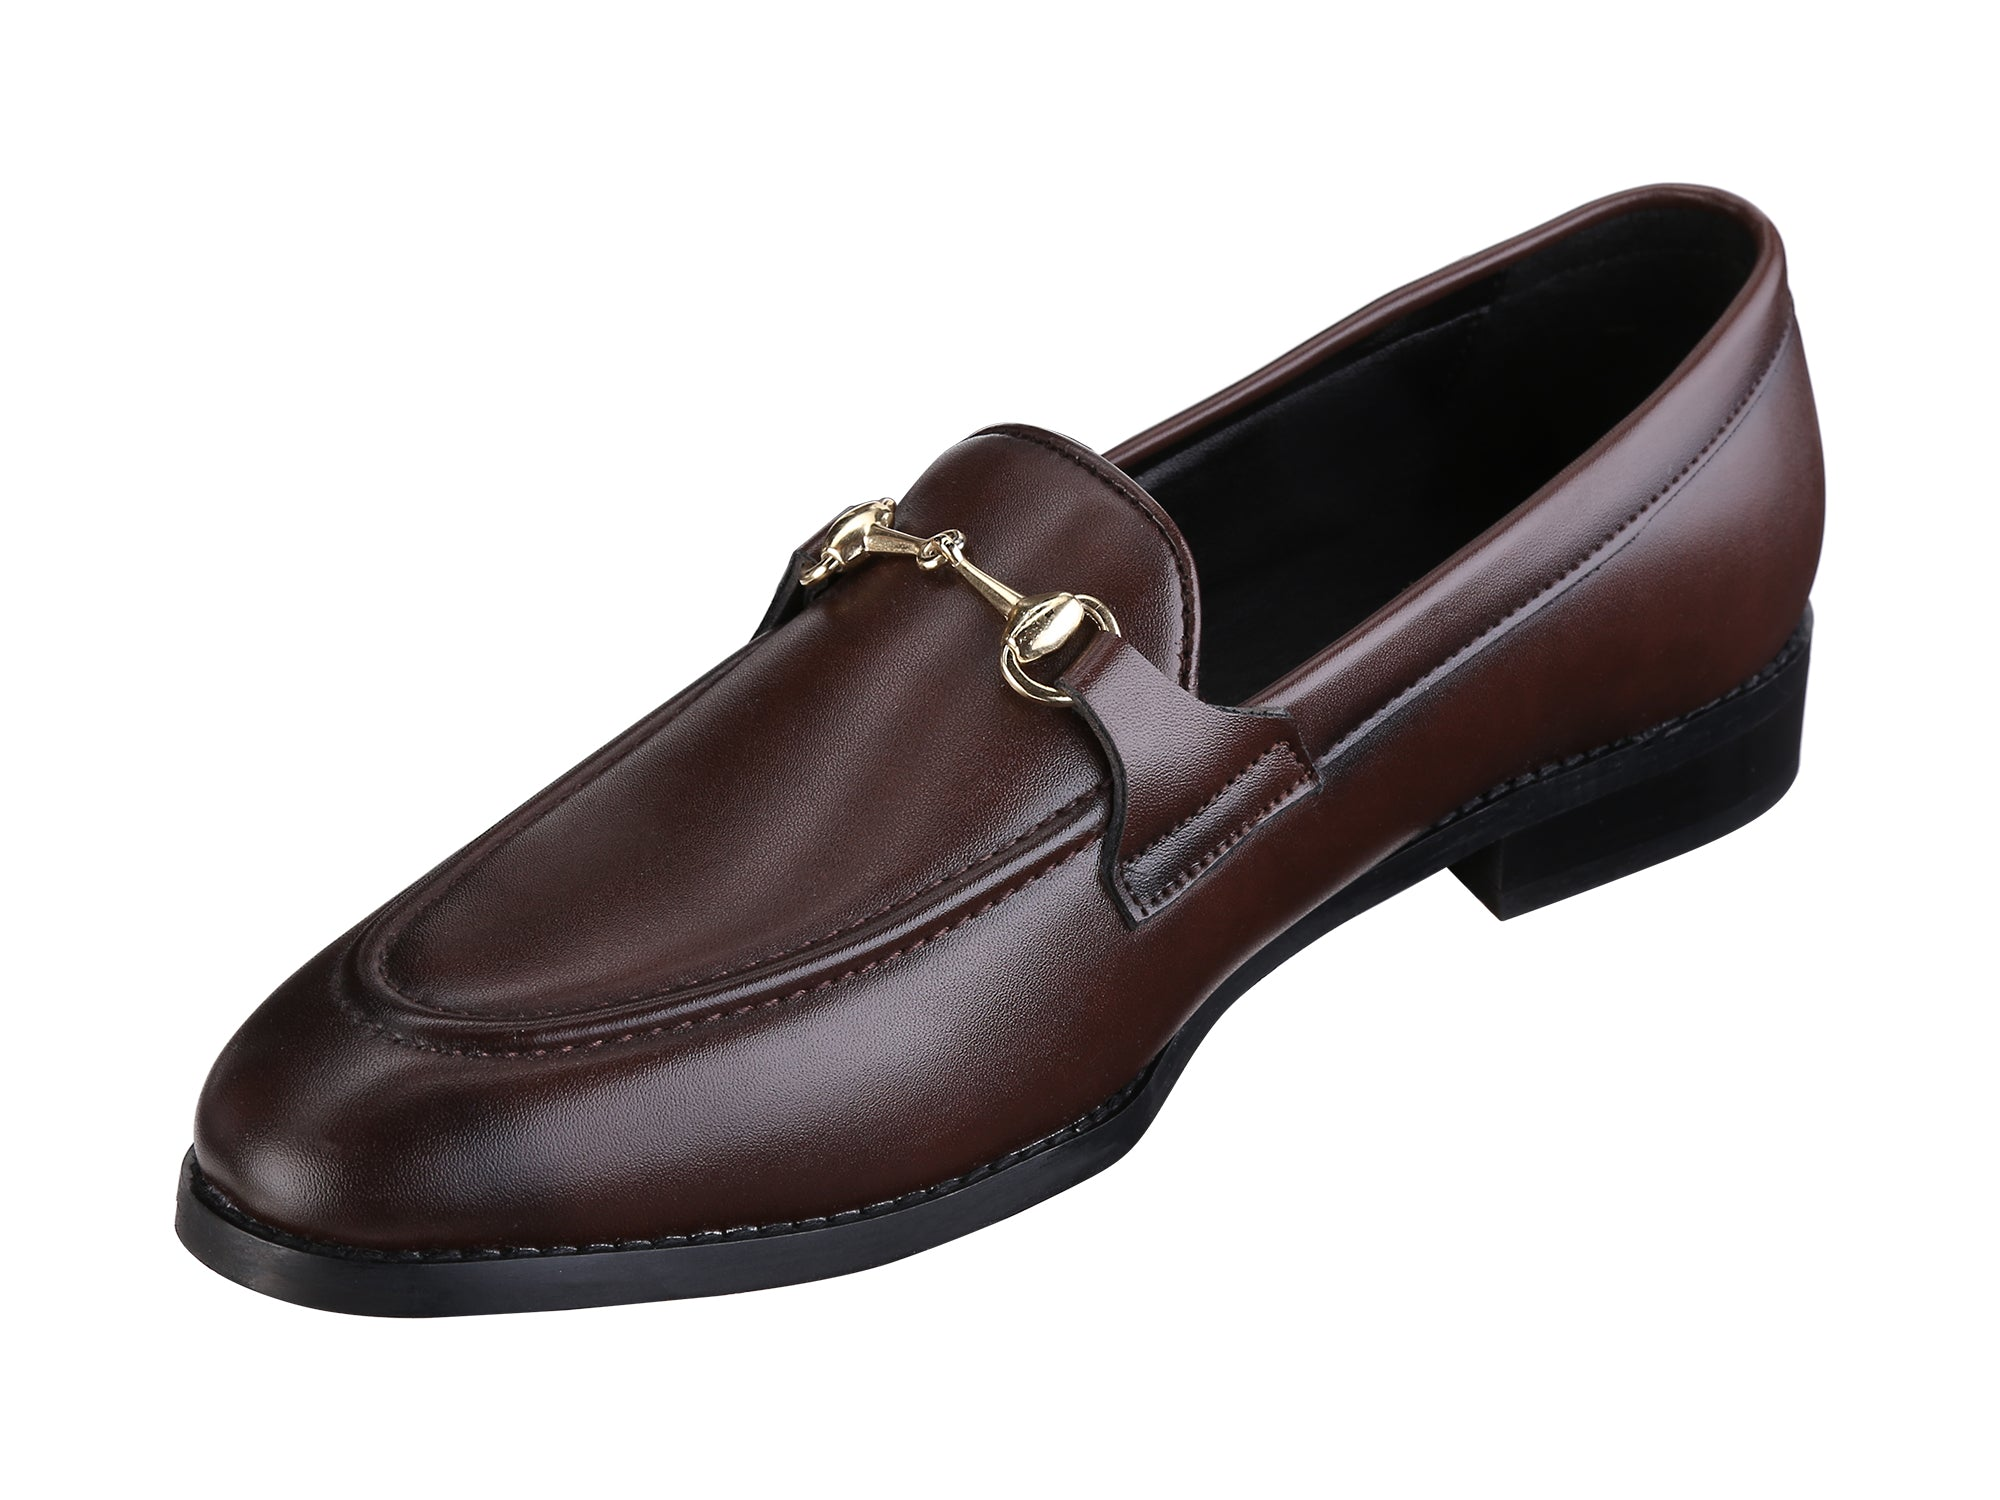 HENLEY BROWN HORSEBIT BUCKLE LOAFERS.